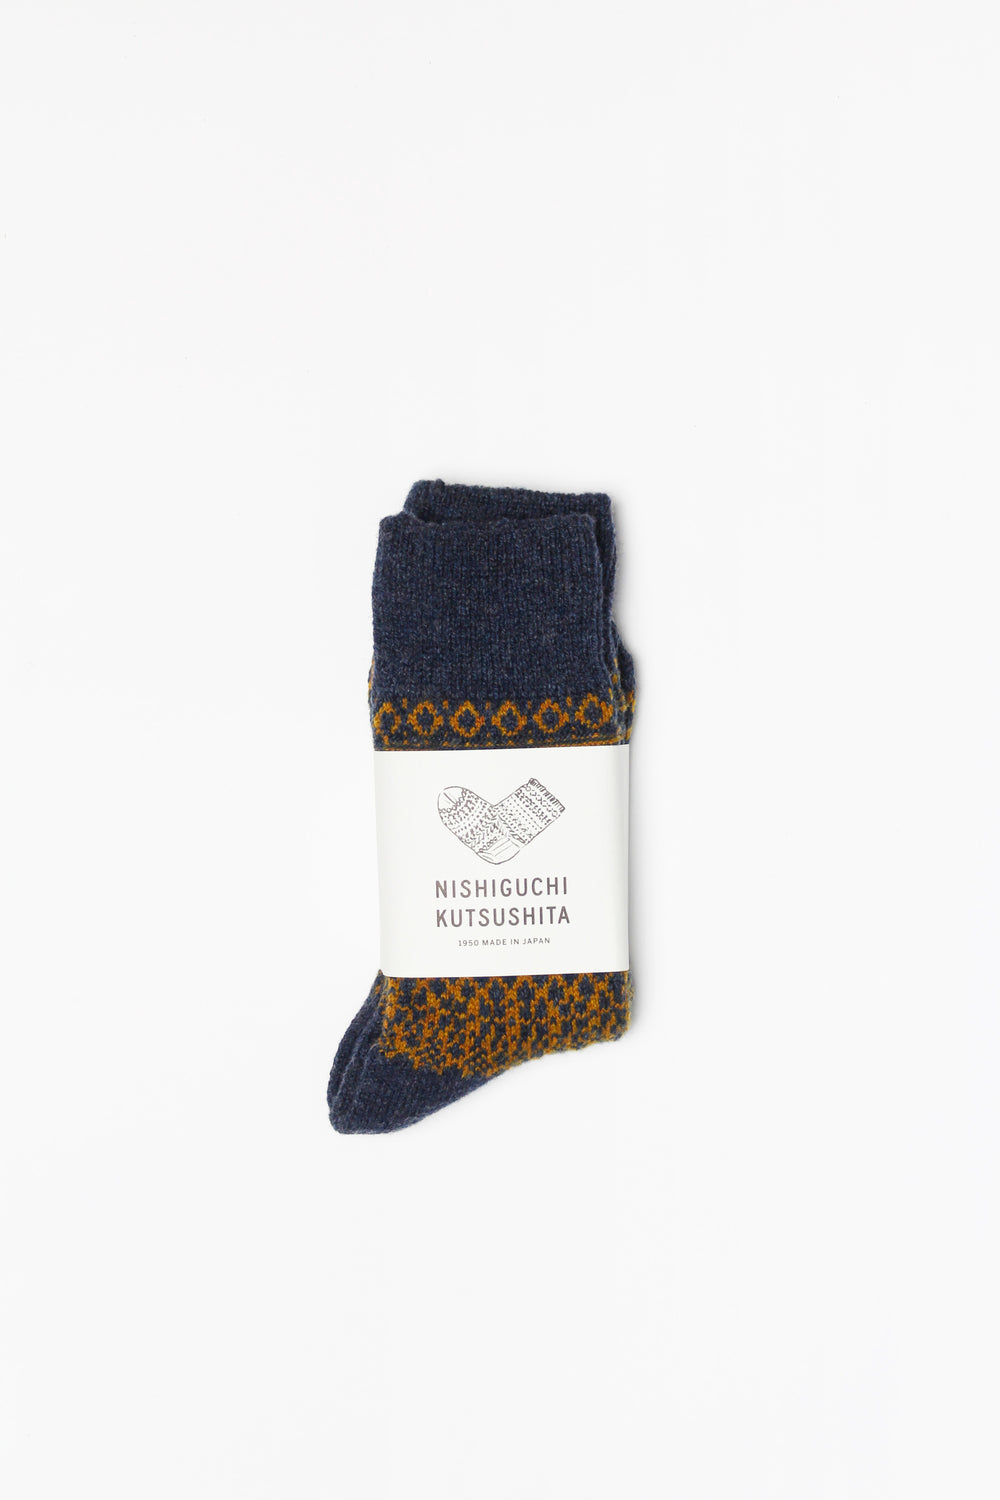 Wool Jacquard Socks, Navy with Mustard (Size Small Only)